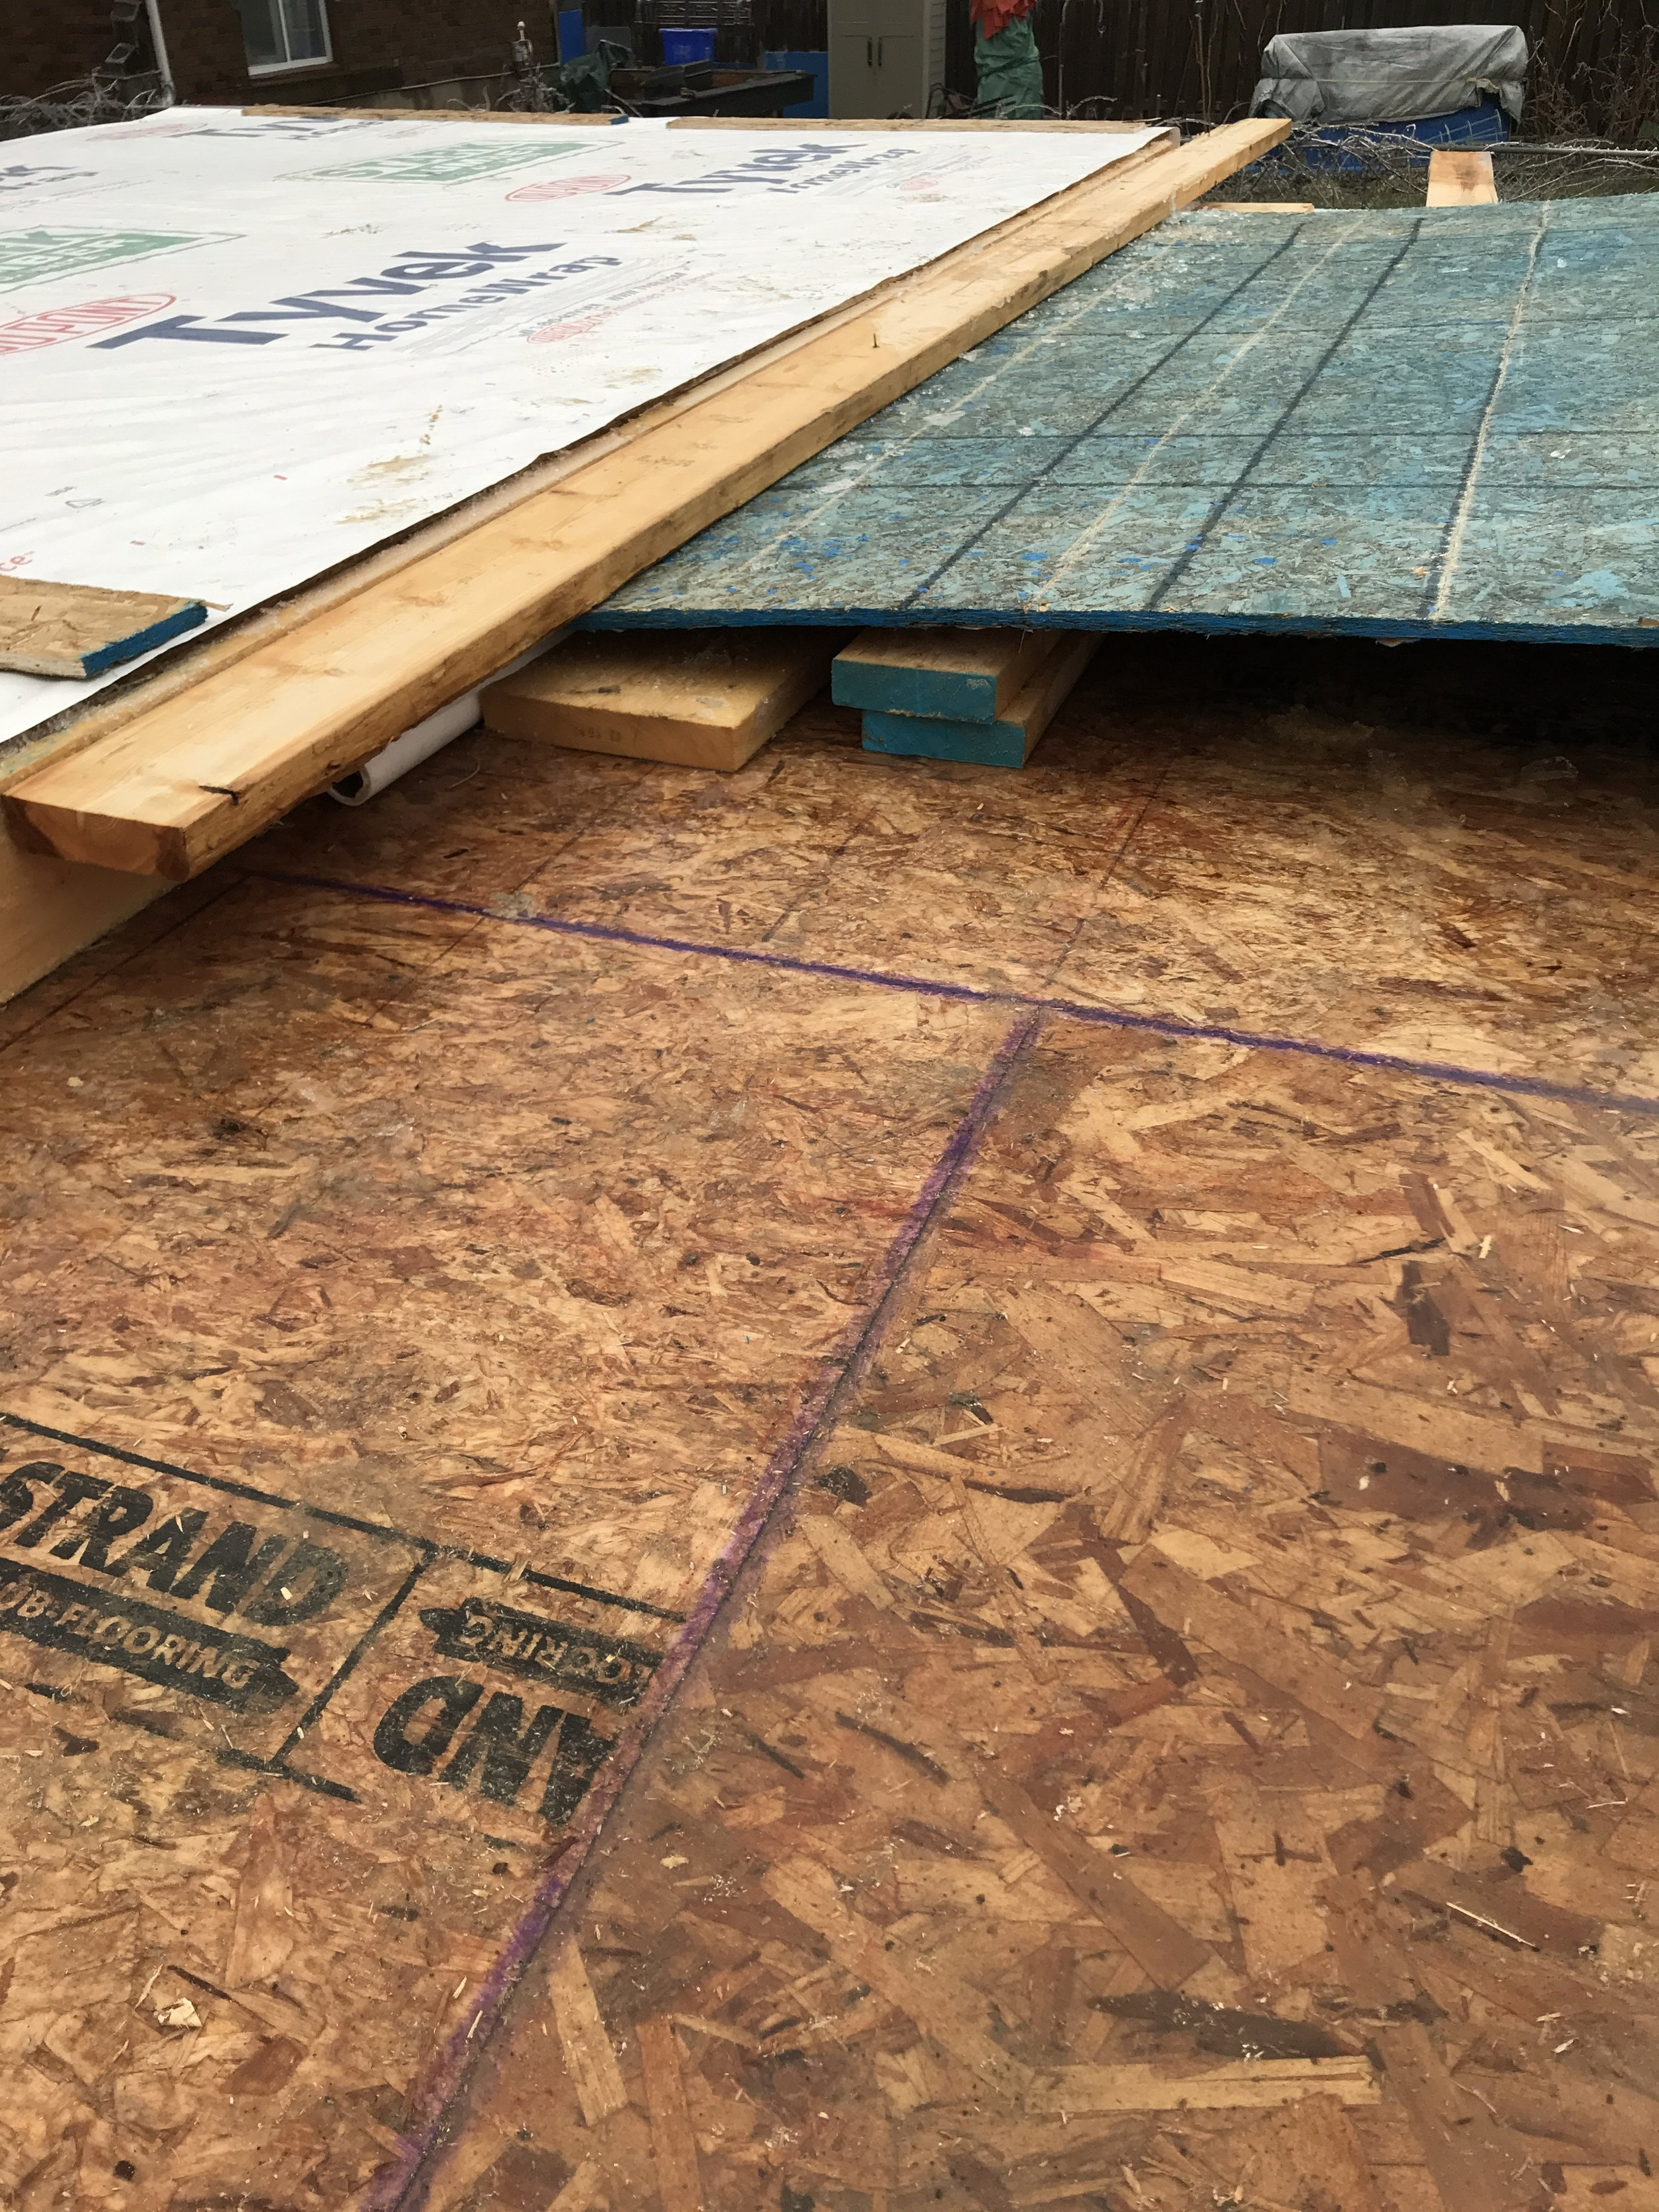 The tapered and wax sealed edges of of these OSB boards (the purple line) ensures the subfloor can be wet and rained/snowed on